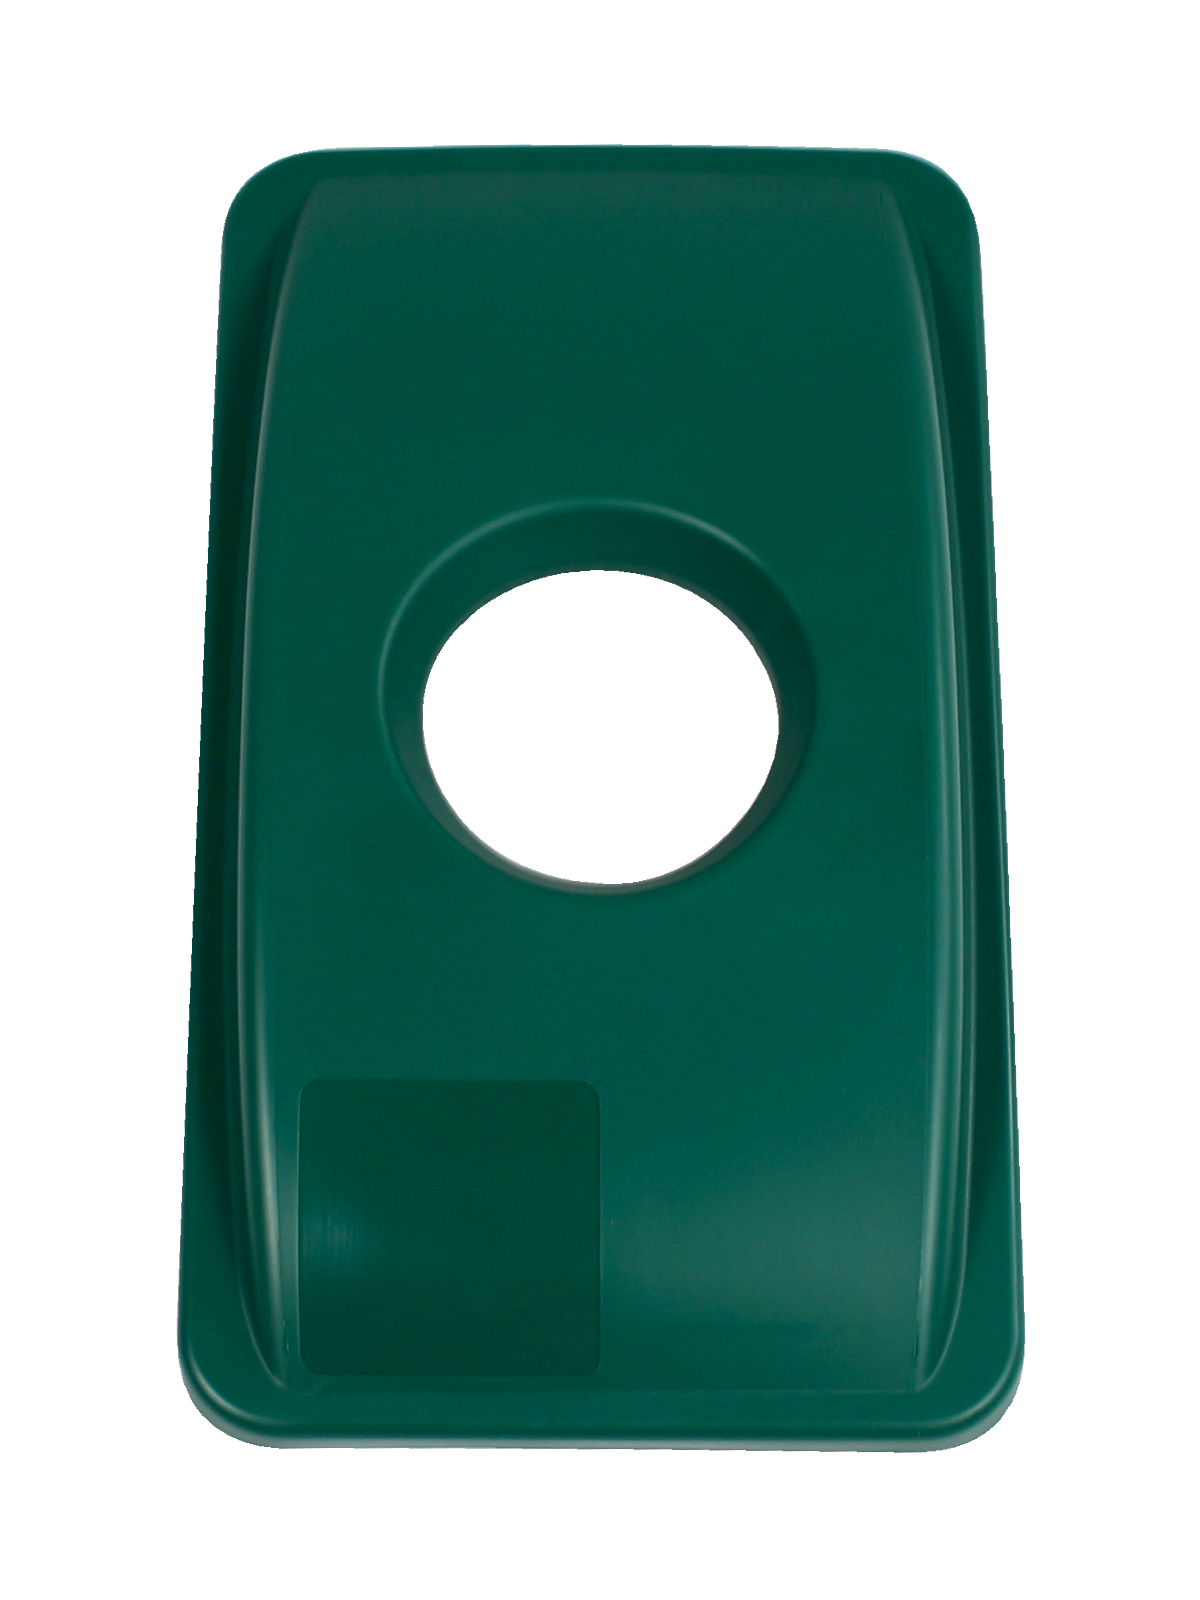 WASTE WATCHER - Single - Lid - Circle - Dark Green